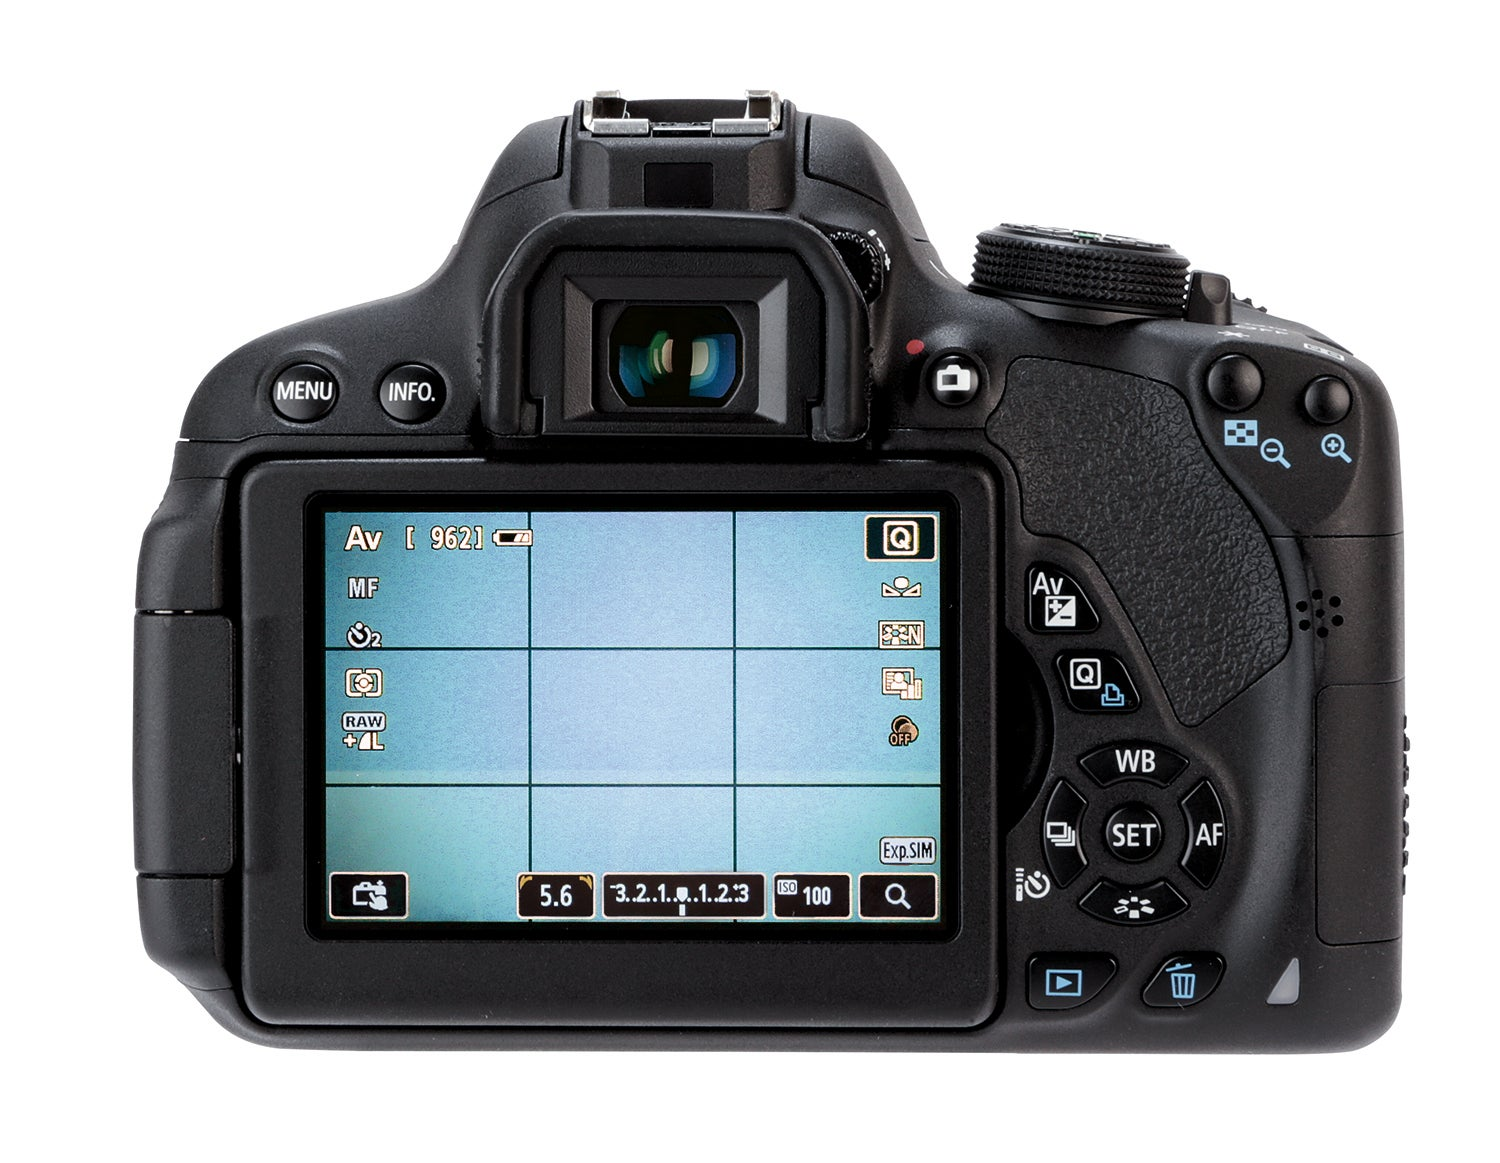 Tests Com Reviews >> Our Essential Guide To Viewfinders And Rear Displays - What Digital Camera